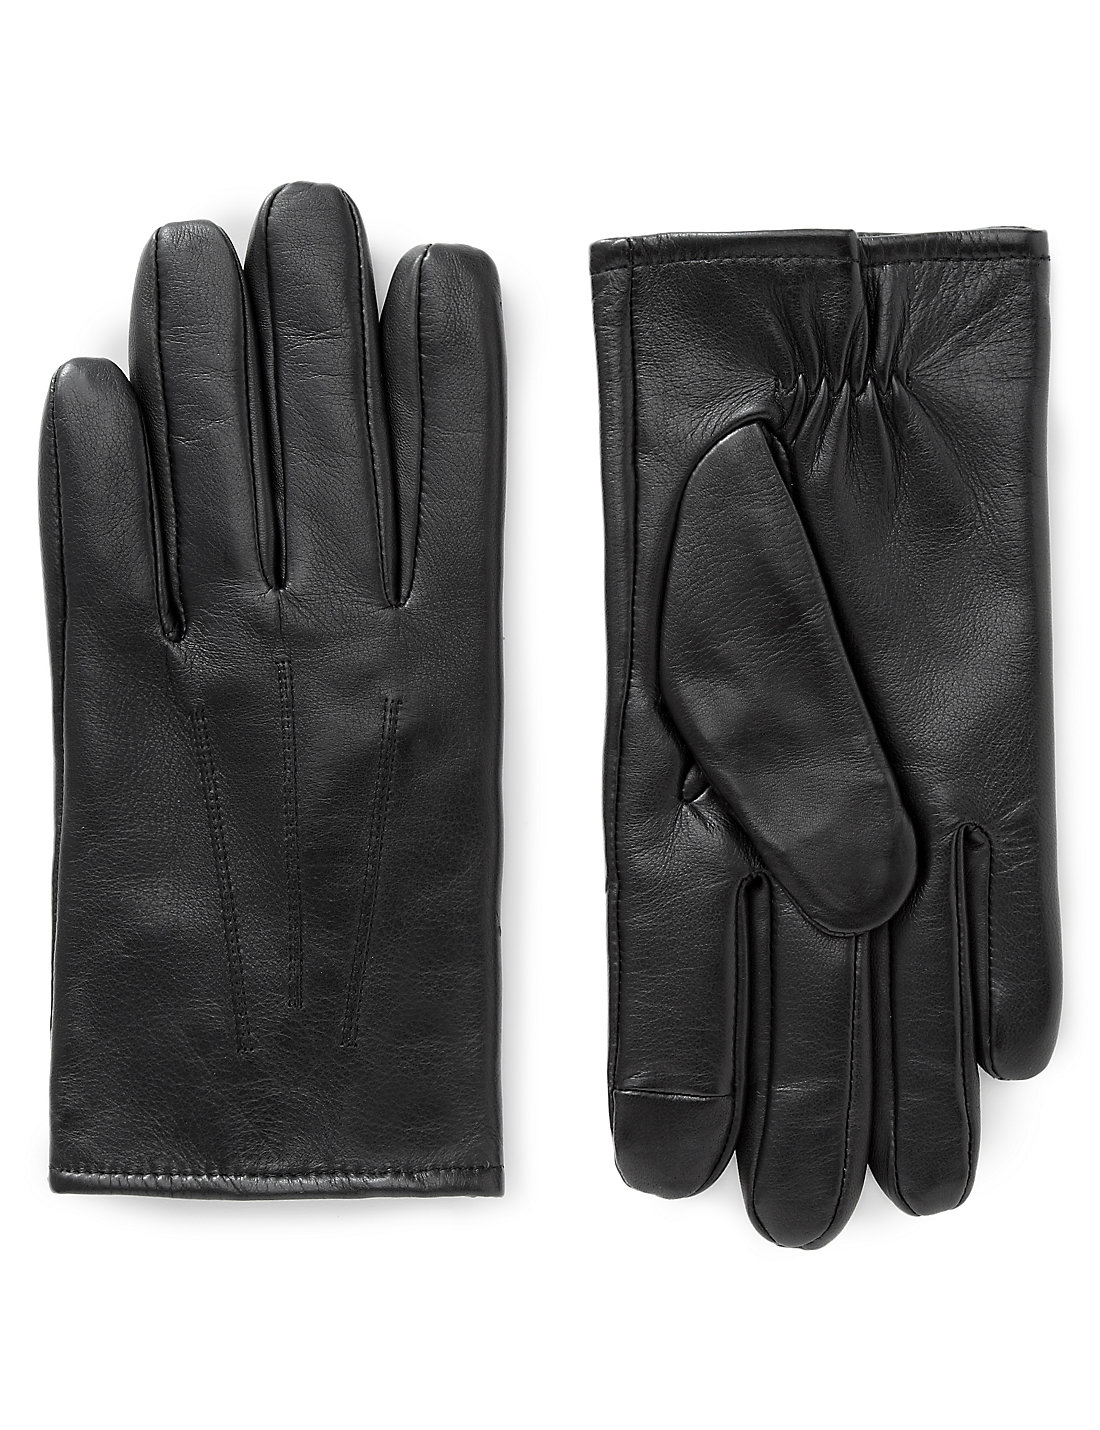 Leather gloves that work with iphone - Leather Touchscreen Gloves With Thinsulate